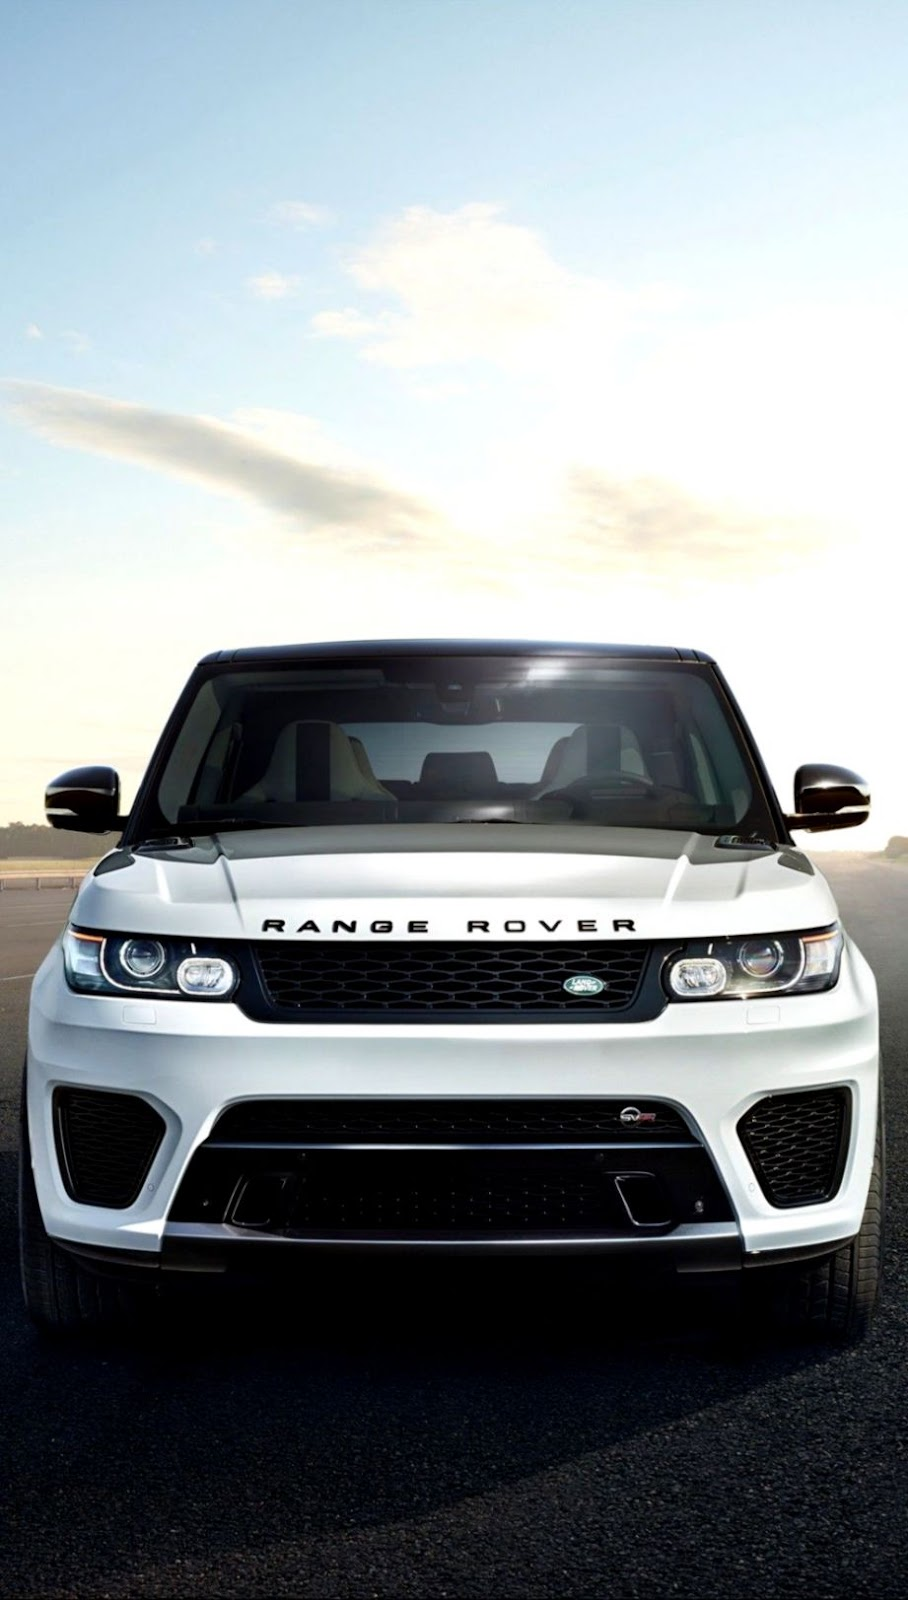 Land Rover Car City Hd Wallpaper Copy Wallpapers